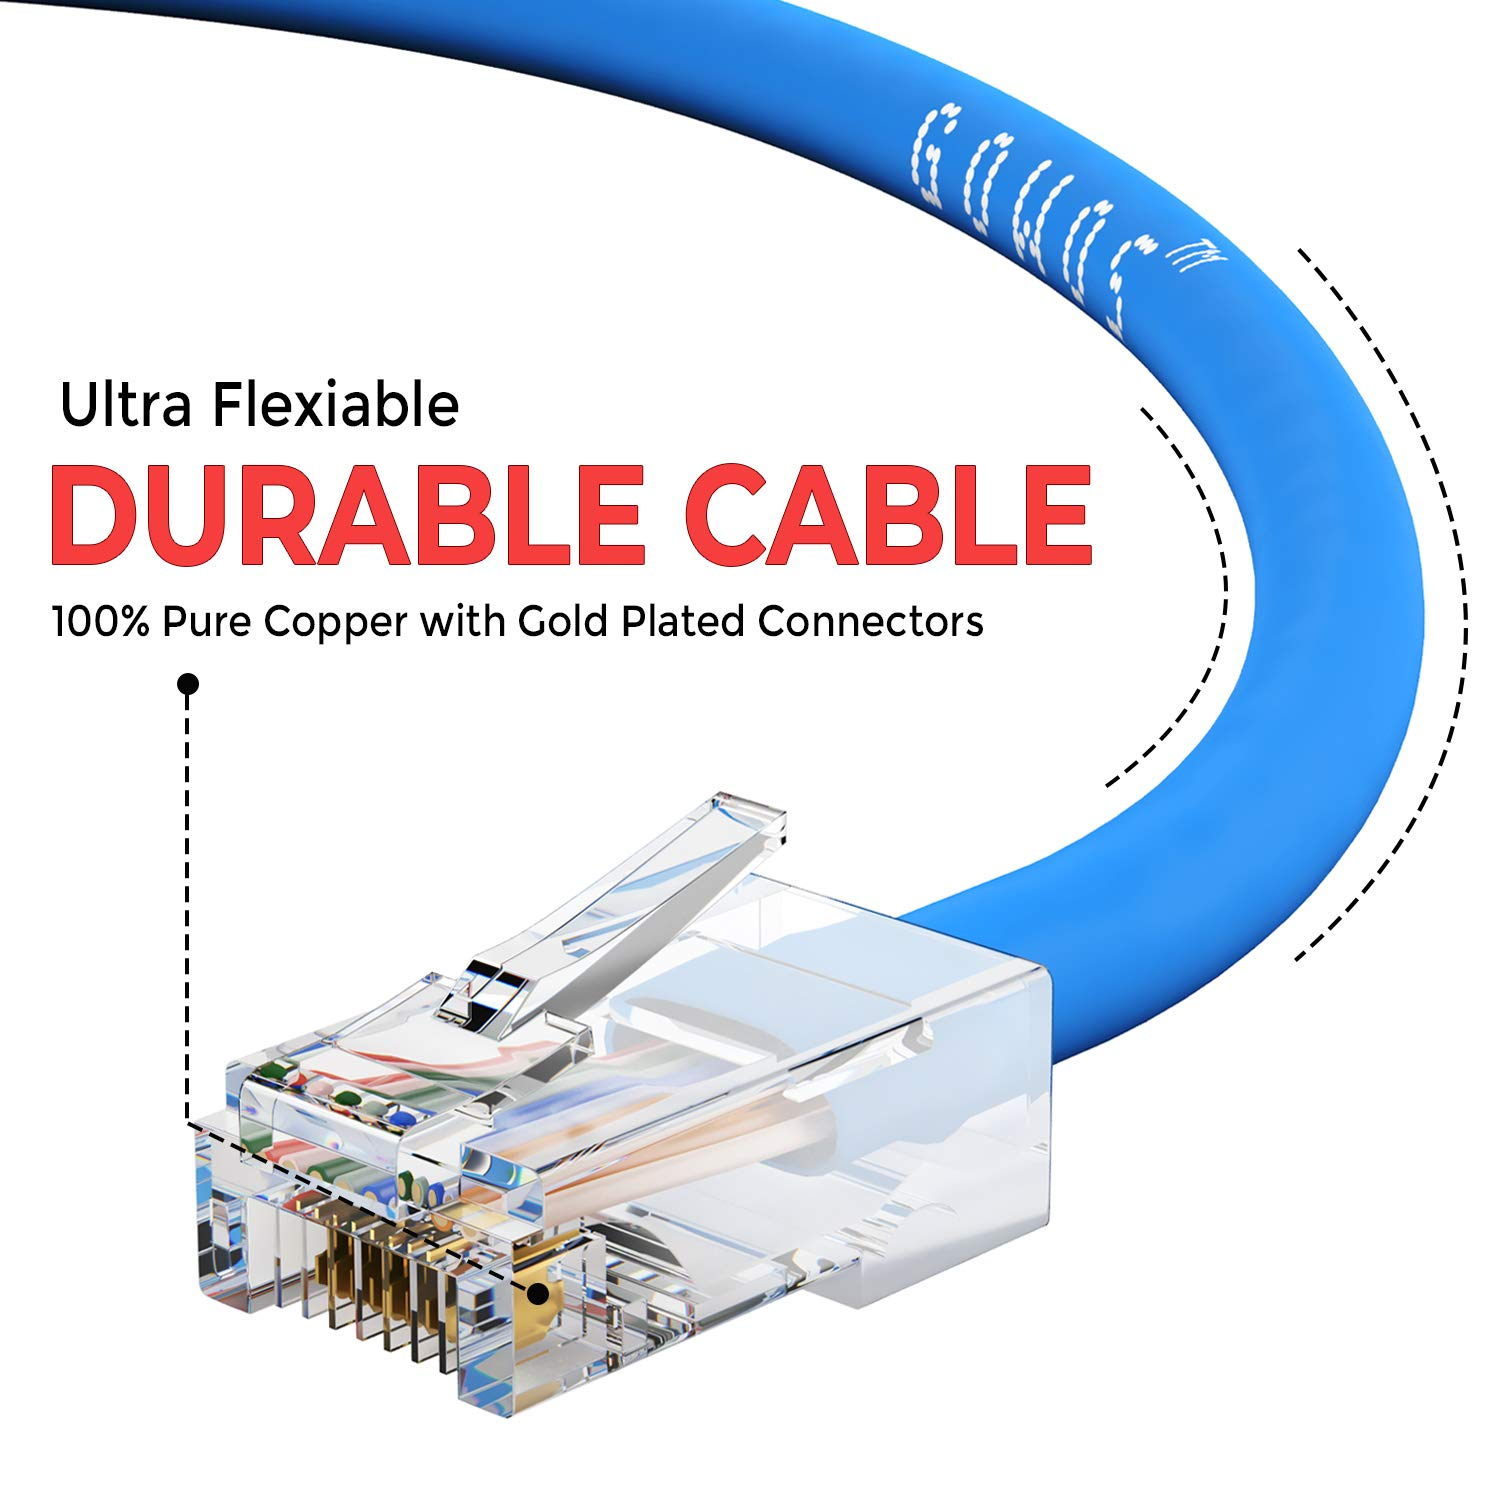 RJ45 10Gbps High Speed LAN Internet Patch Cord Available in 28 Lengths and 10 Colors 20 Feet - White UTP Cat6 Ethernet Cable Computer Network Cable with Snagless Connector GOWOS 10-Pack